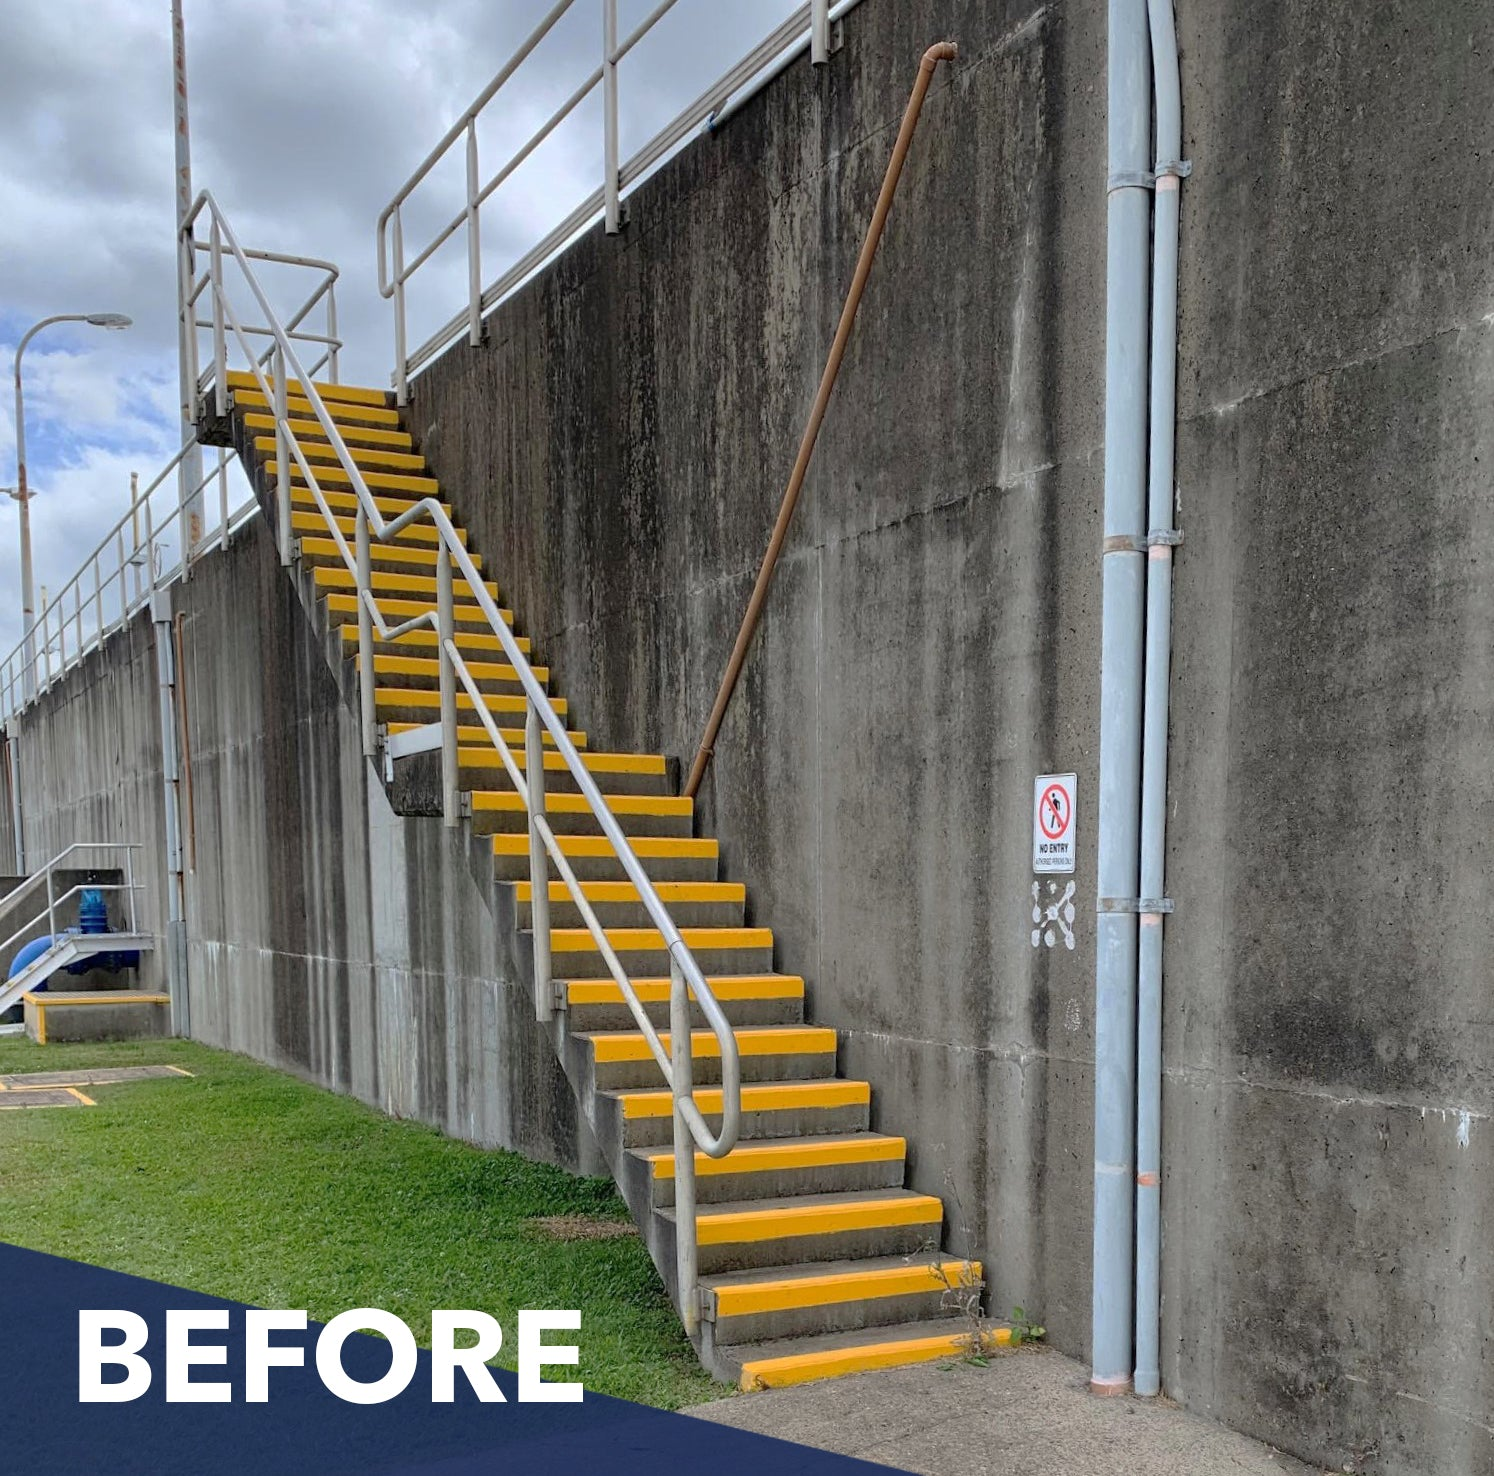 Before the stairway and handrail was customised by Mass Products